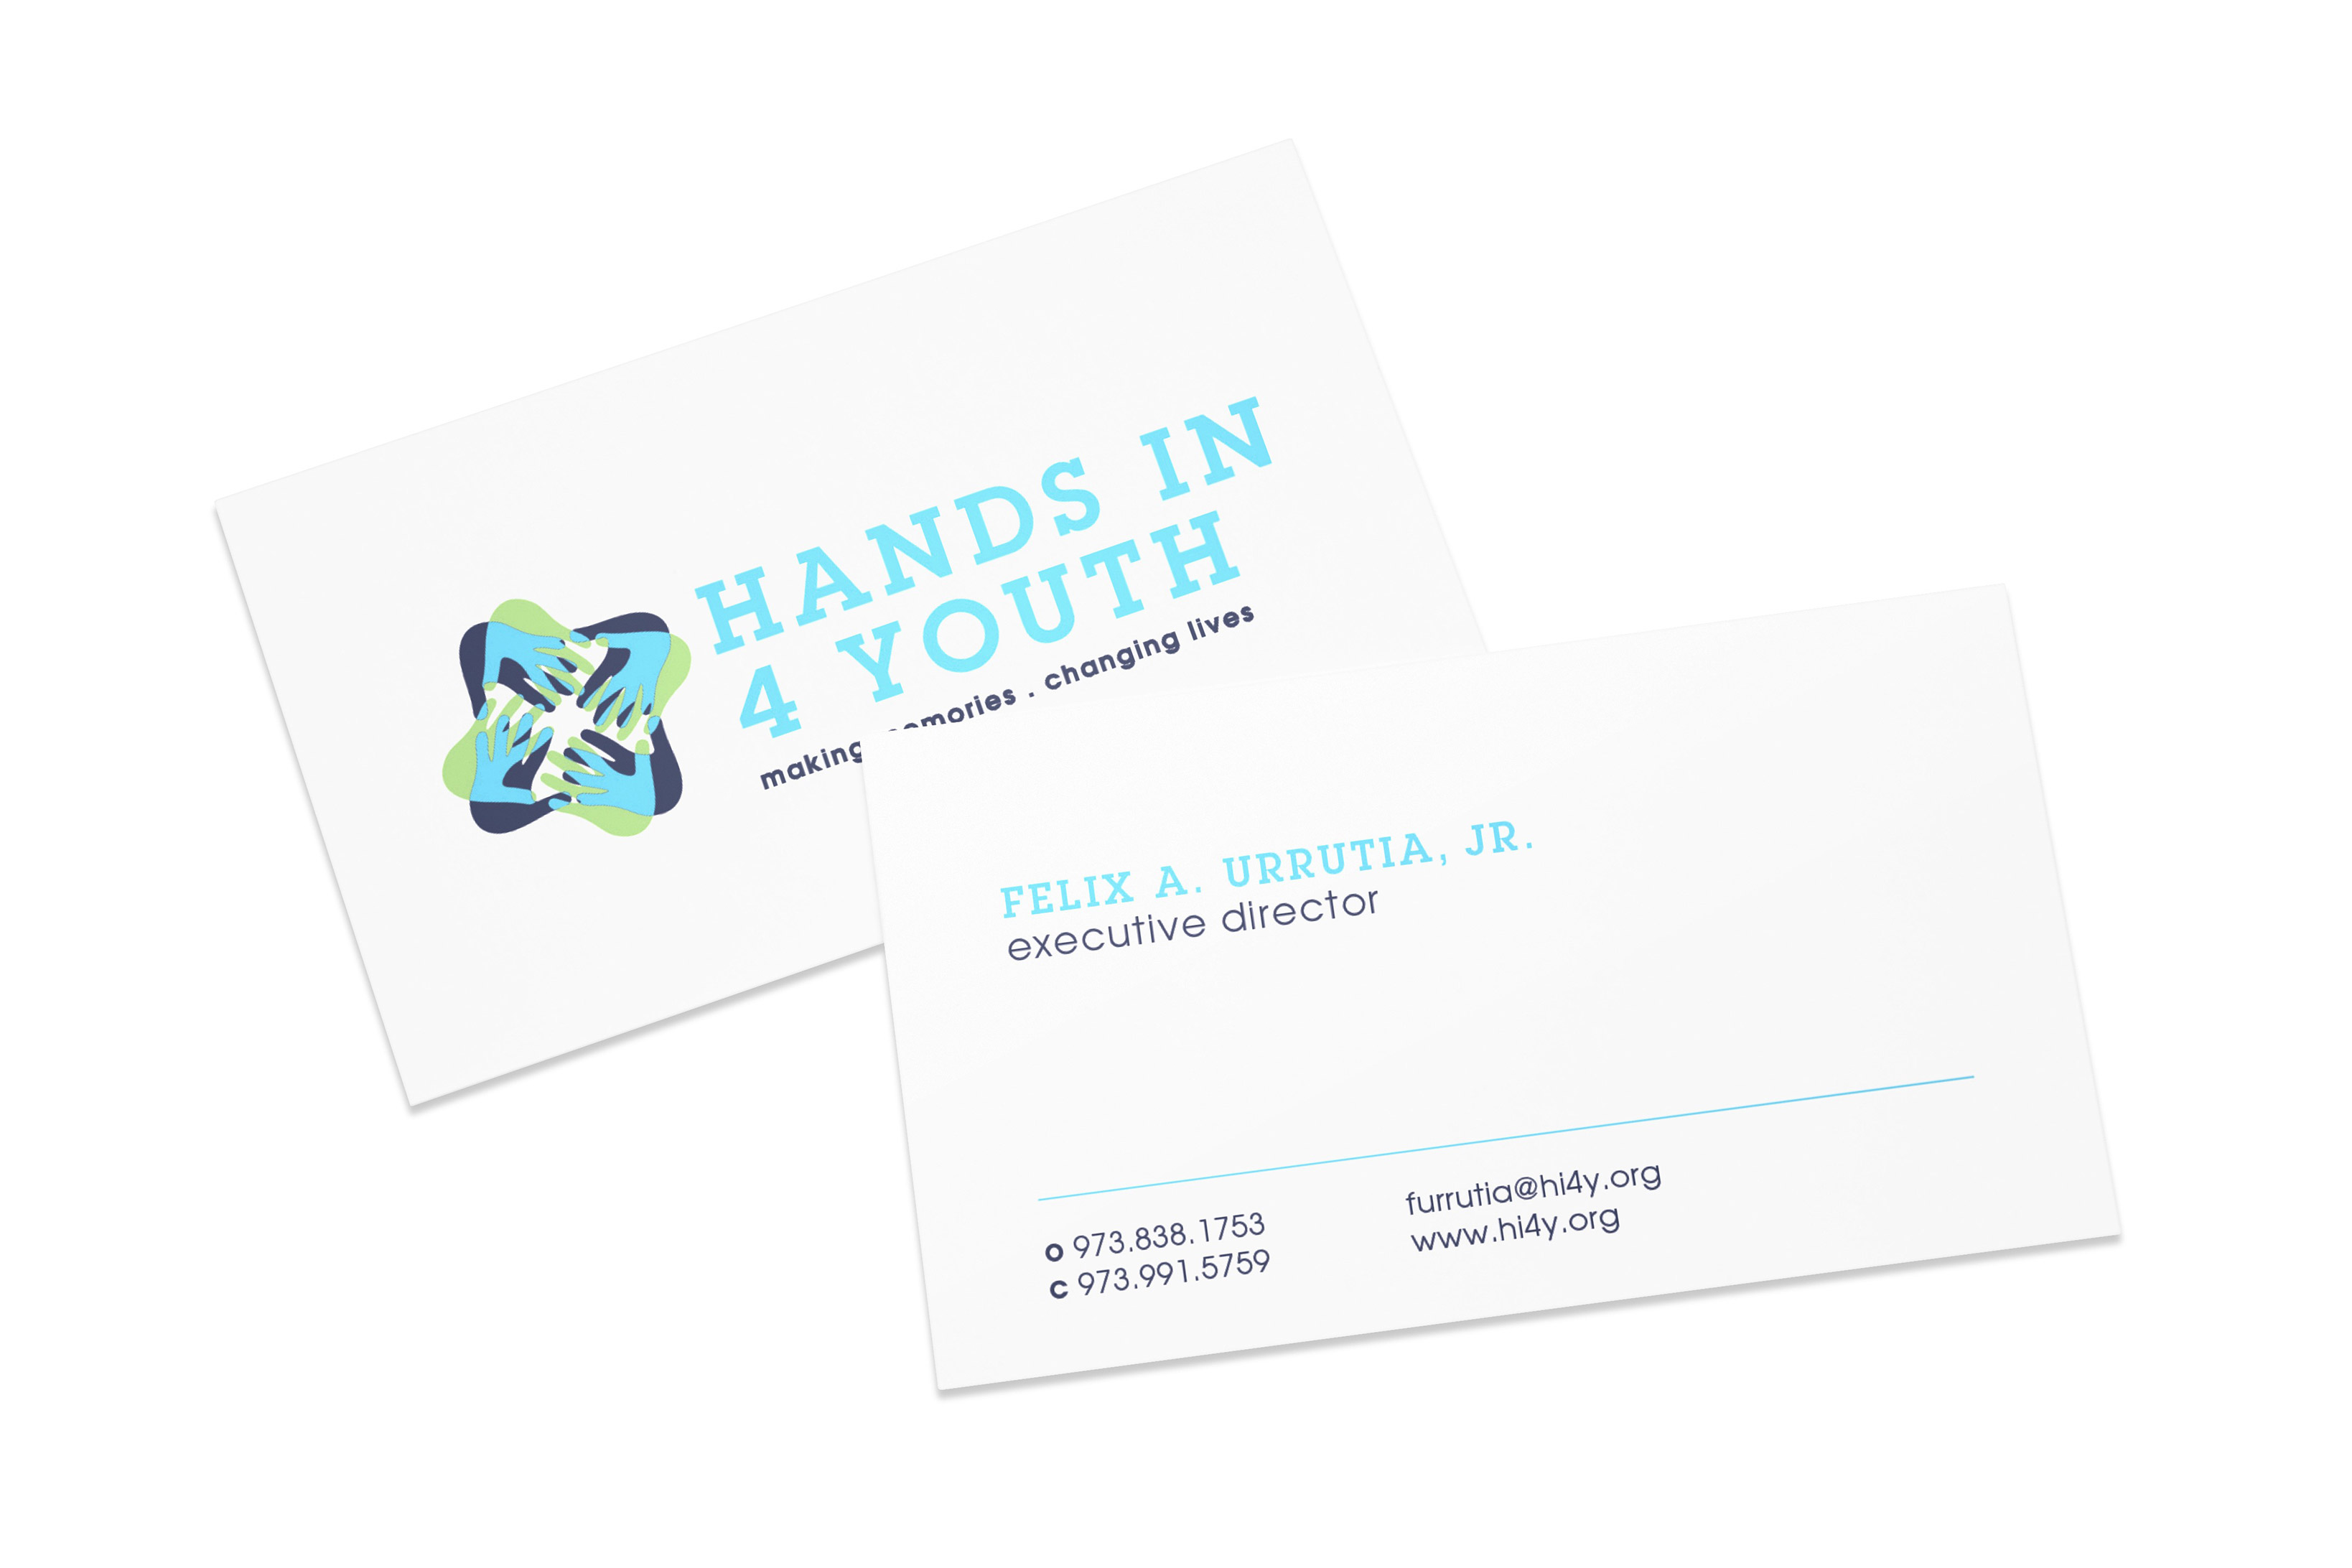 business-card-0416-3-2016-04-11